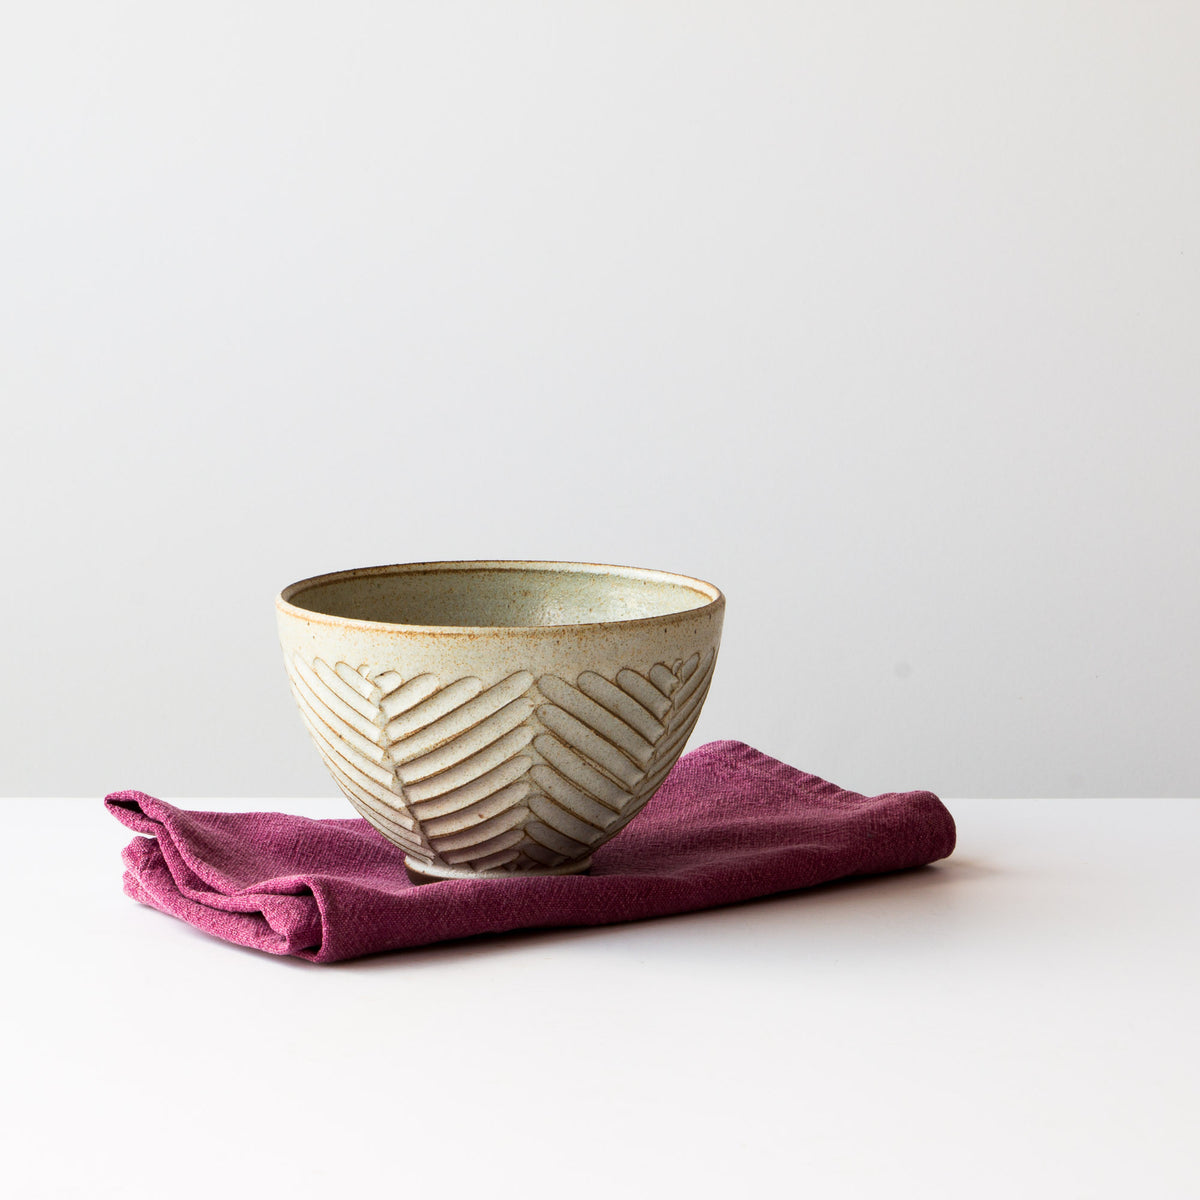 Greige Colour - Handmade Ceramic Latté Bowl / Coffee Cup - Hand Thrown in Canada - Chic & Basta